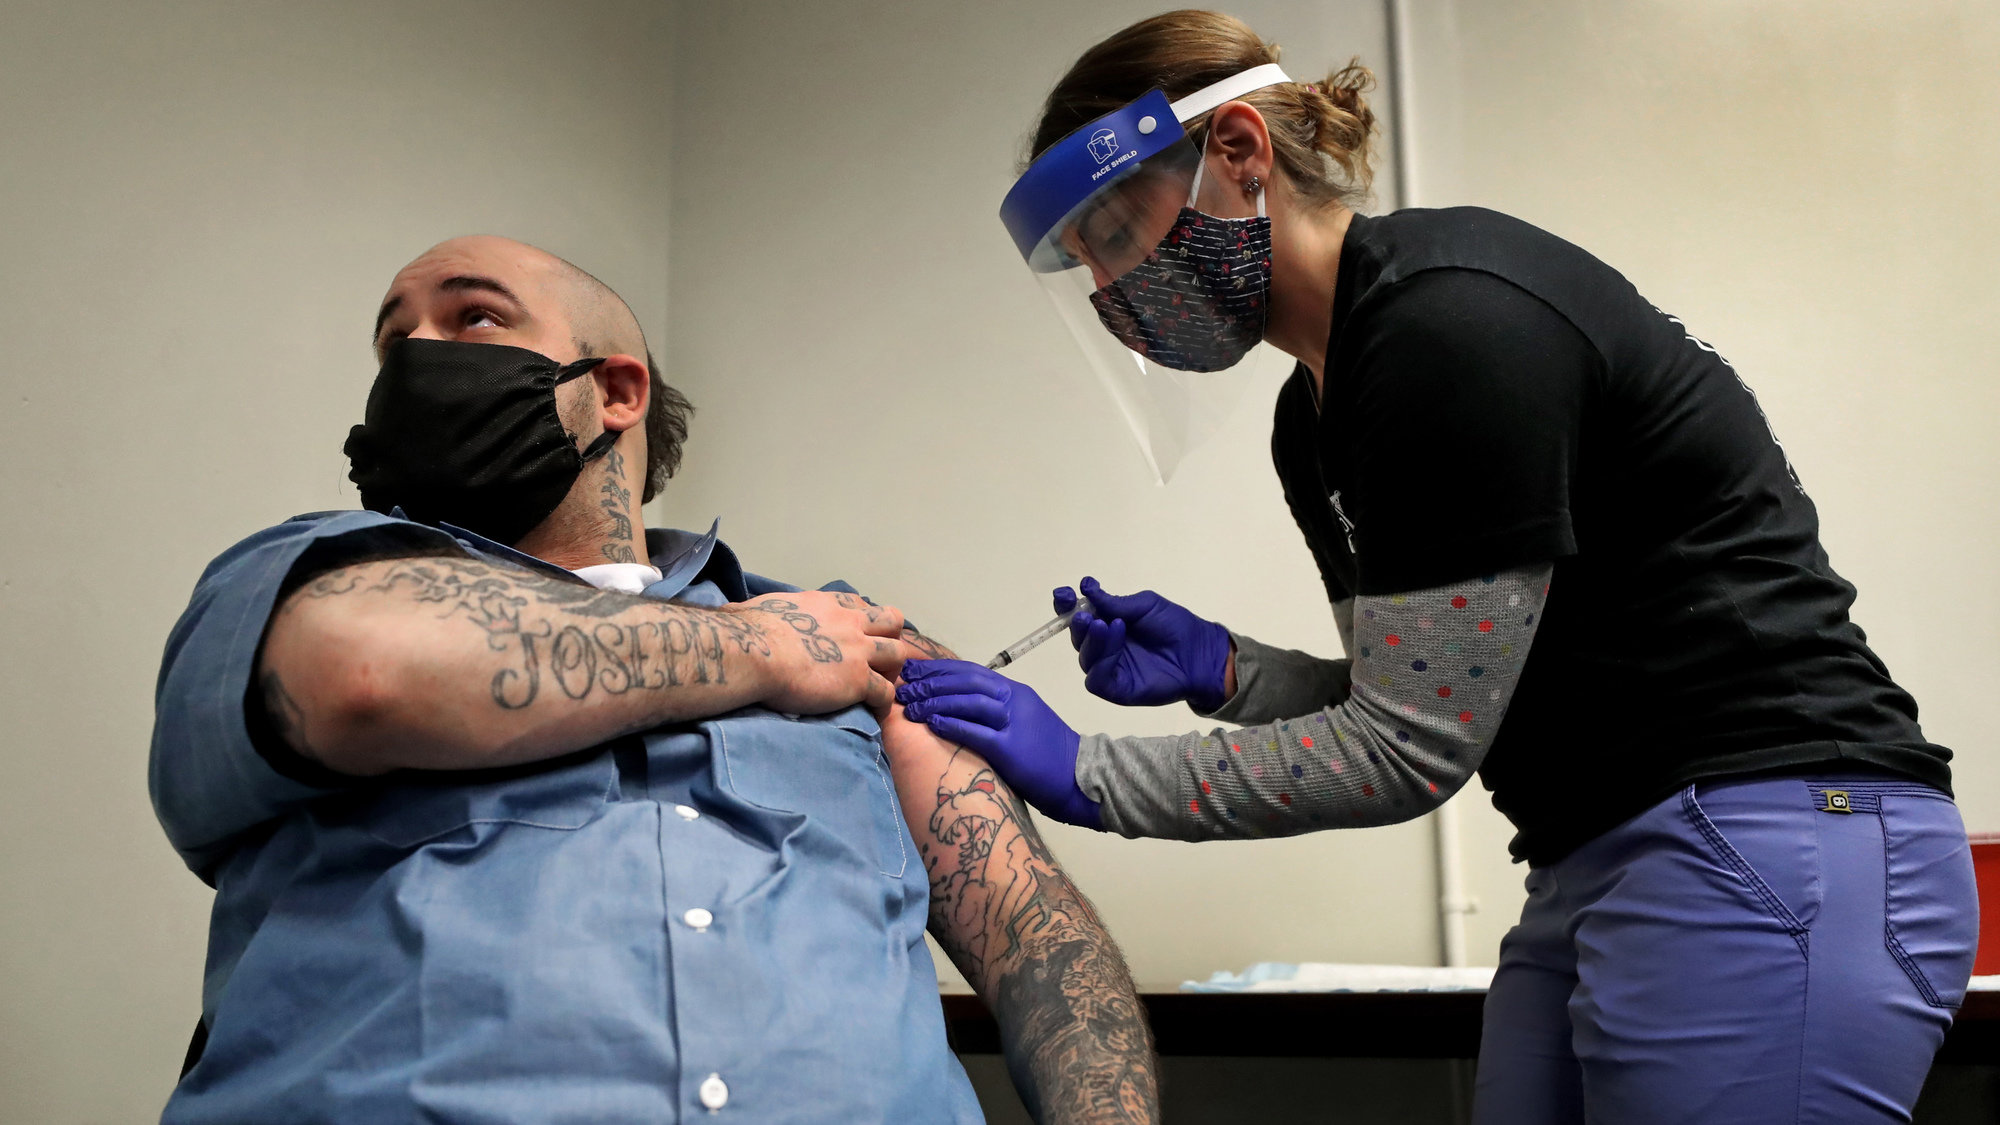 Christian Millett gets the first of two COVID-19 vaccine shots from Alyssa Dobbs, a contractor in the medical department at the Worcester County House of Corrections in West Boylston, Mass., in January.